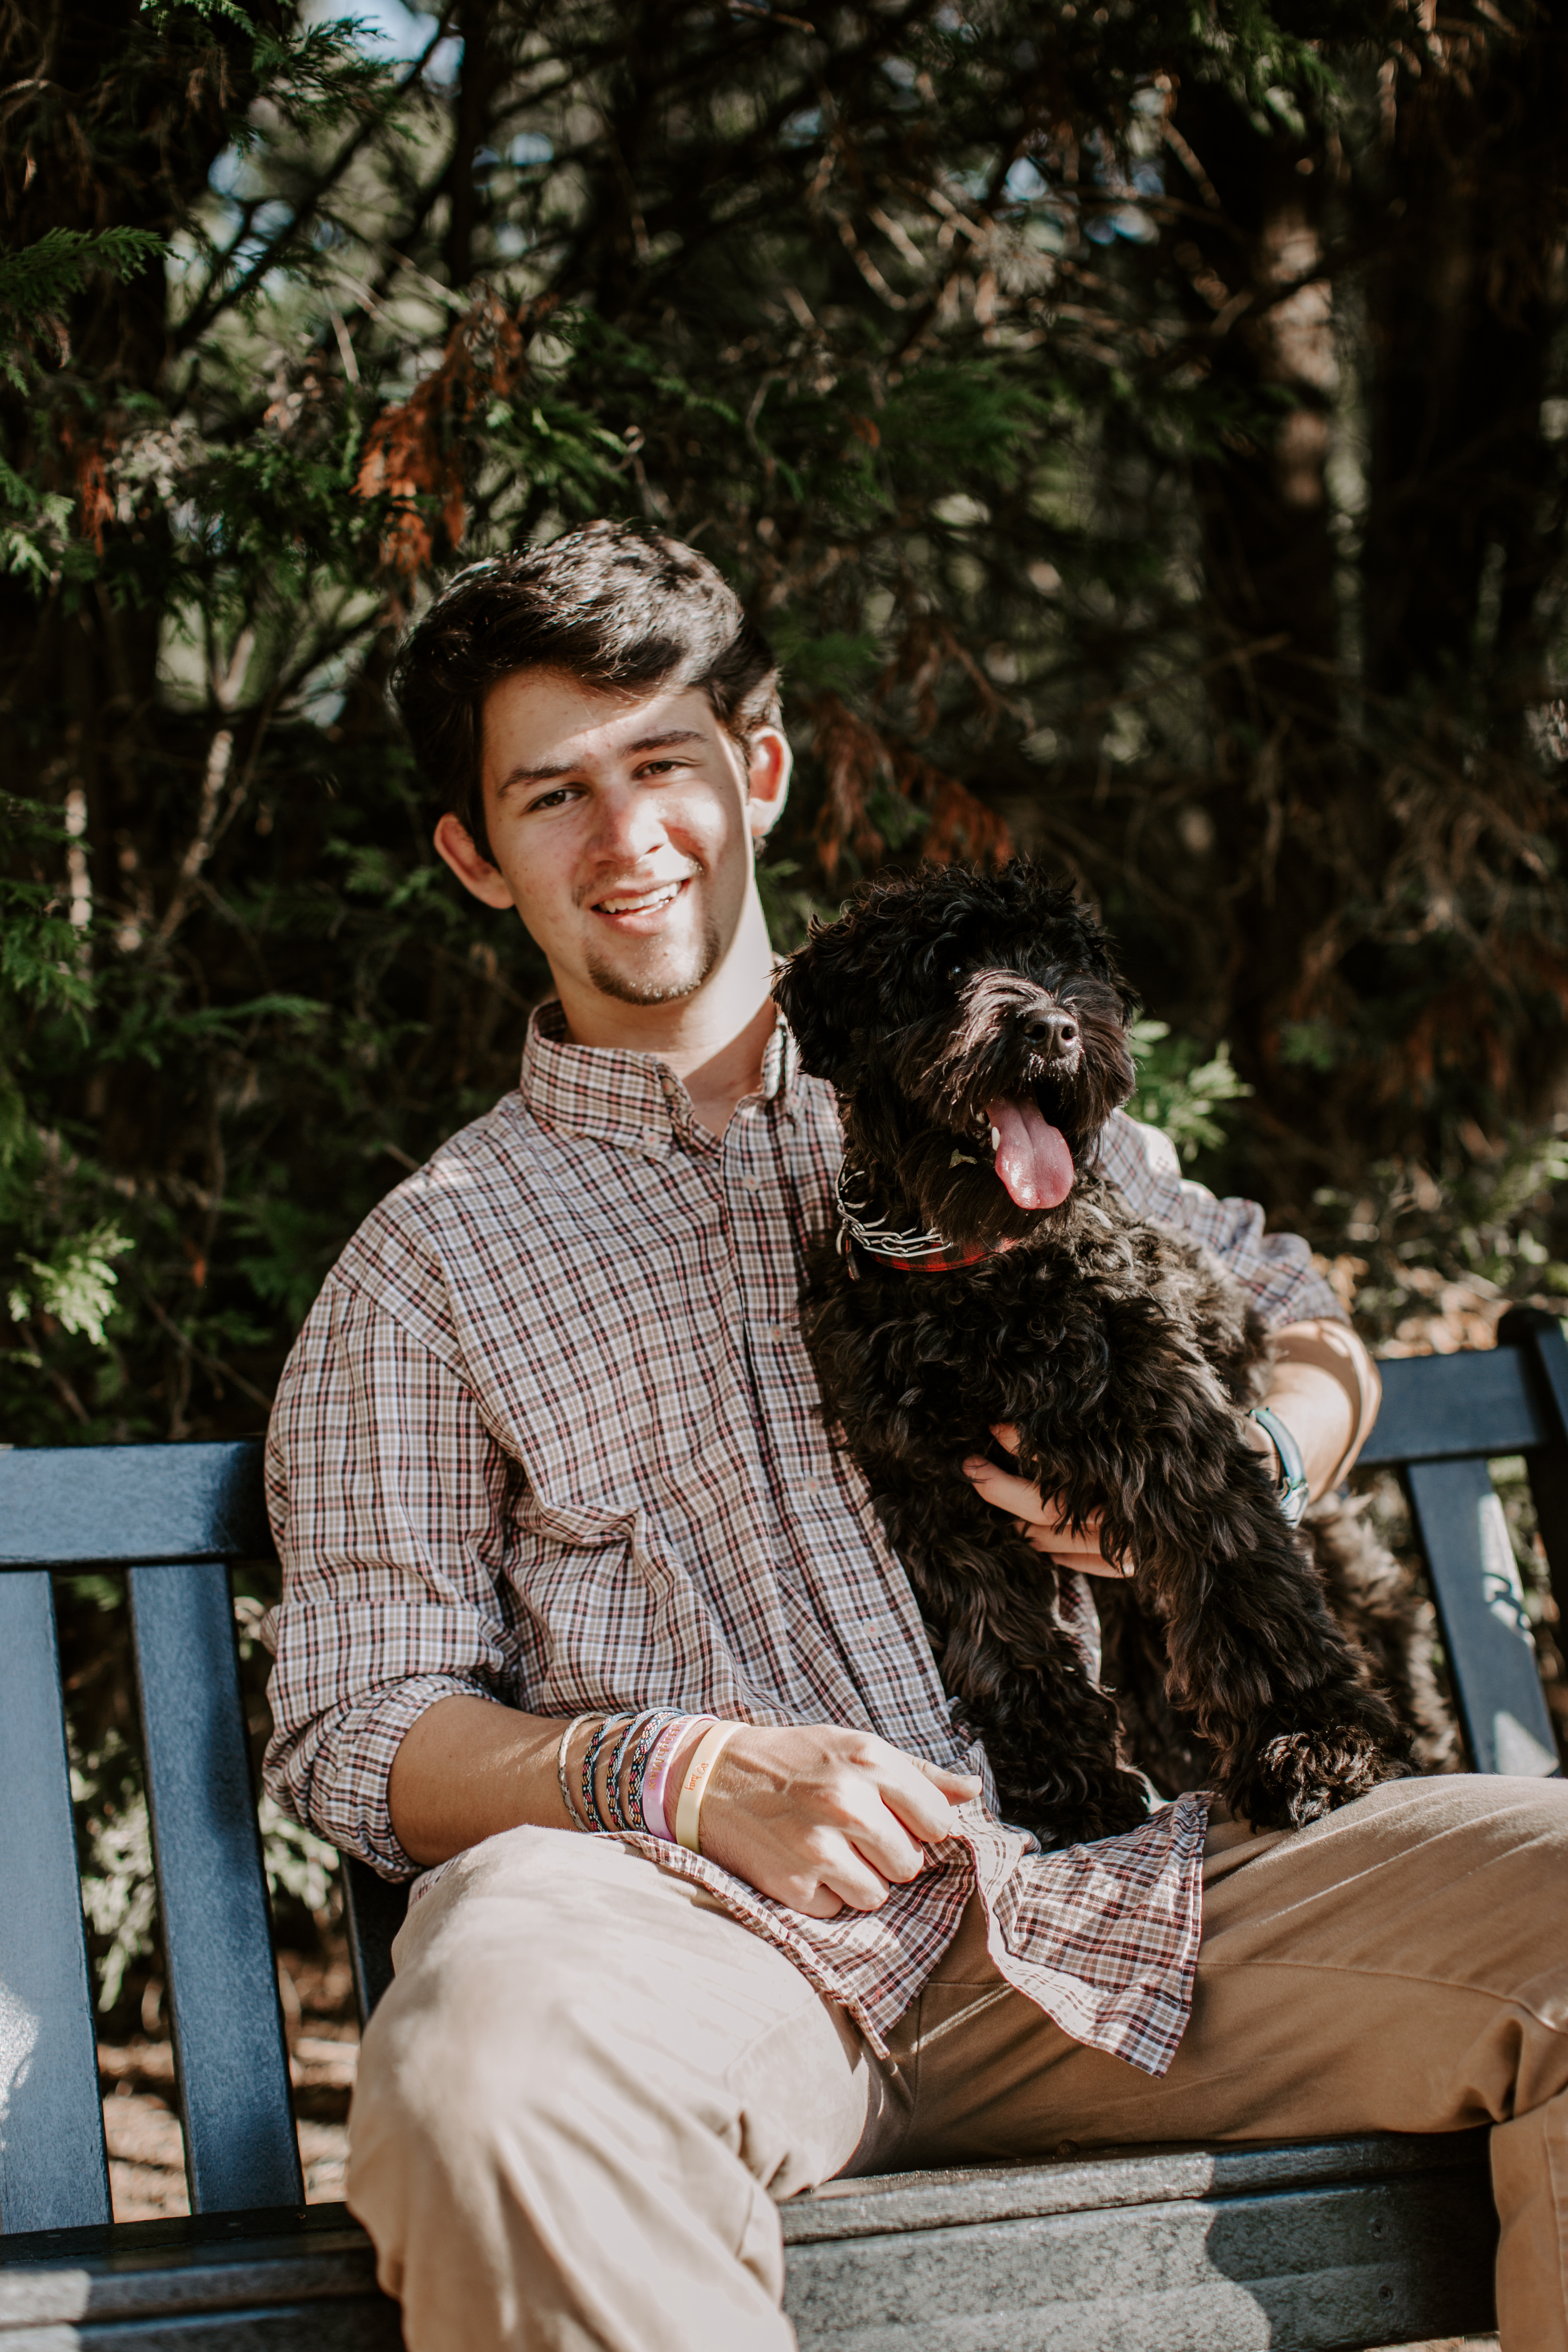 Christian O. Senior pictures collared shirt button up stairs poses pictures baseball senior garden dog and man